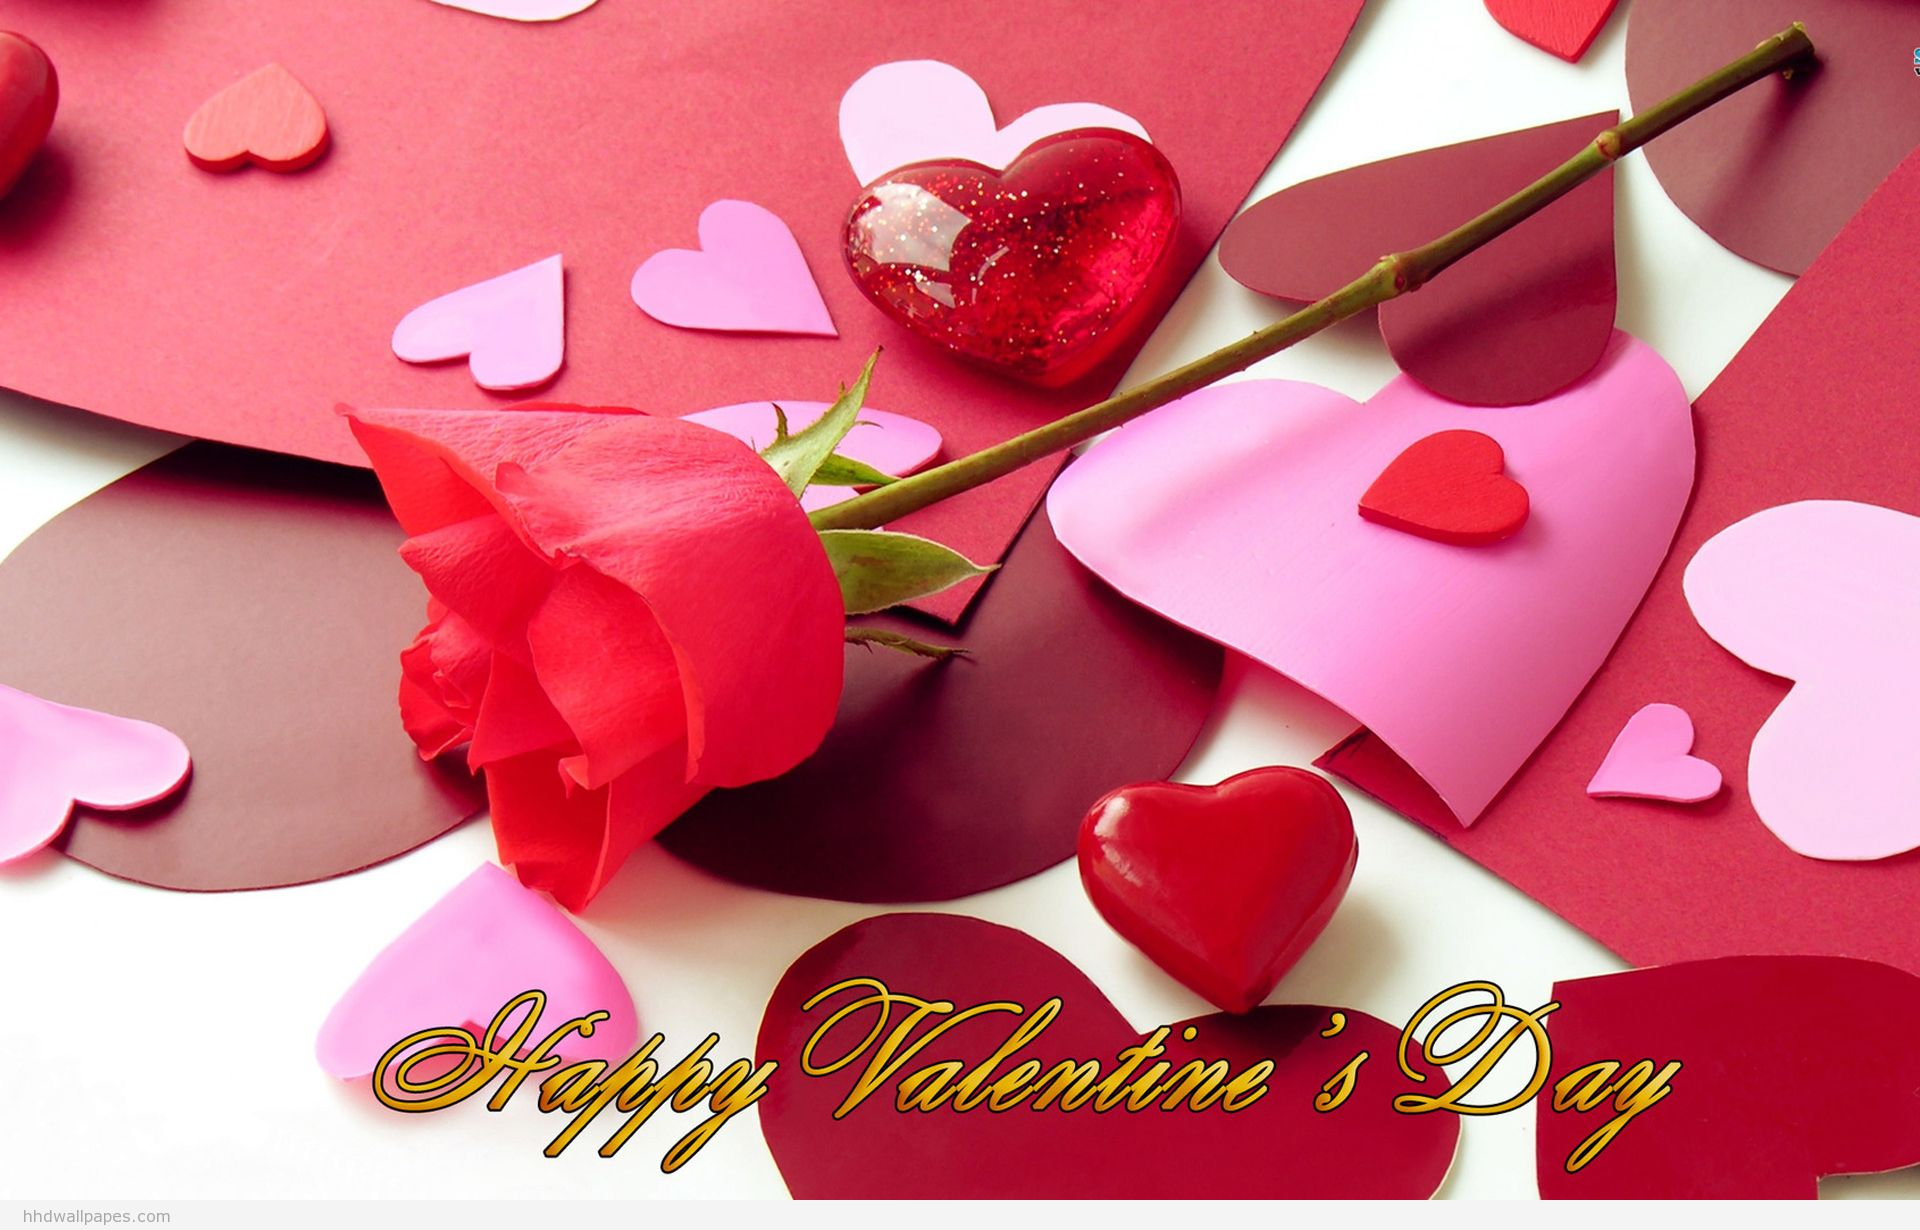 1000+ images about Valentines Day on Pinterest | Happy valentines day